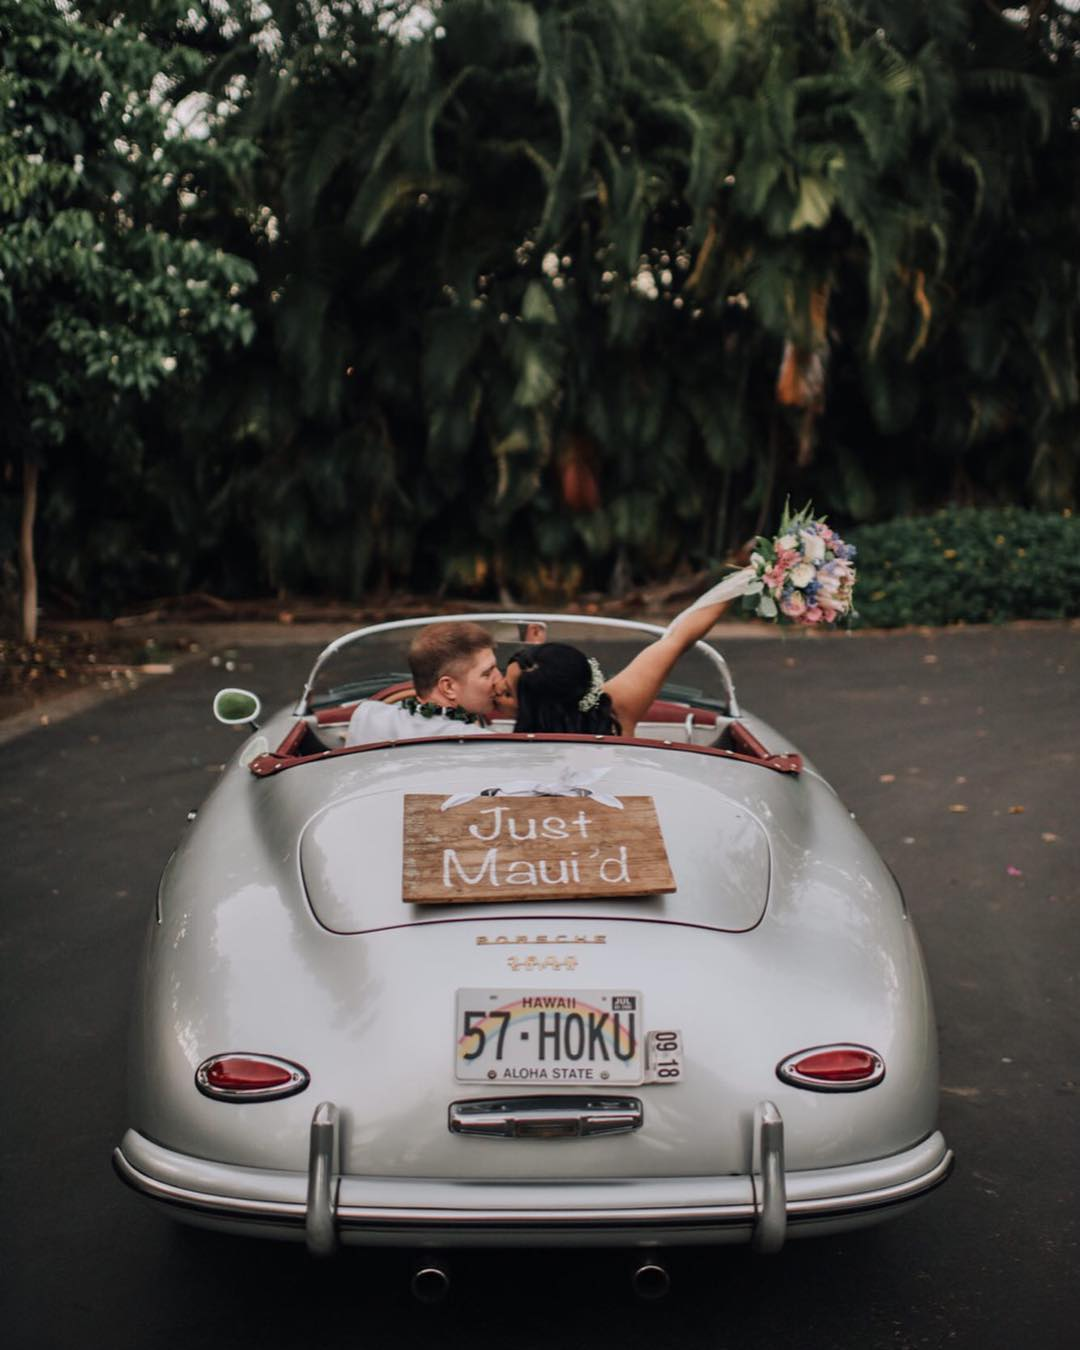 3 Well Travelled Bride Maui Roadsters Wedding Car Hire Hawaii.jpg